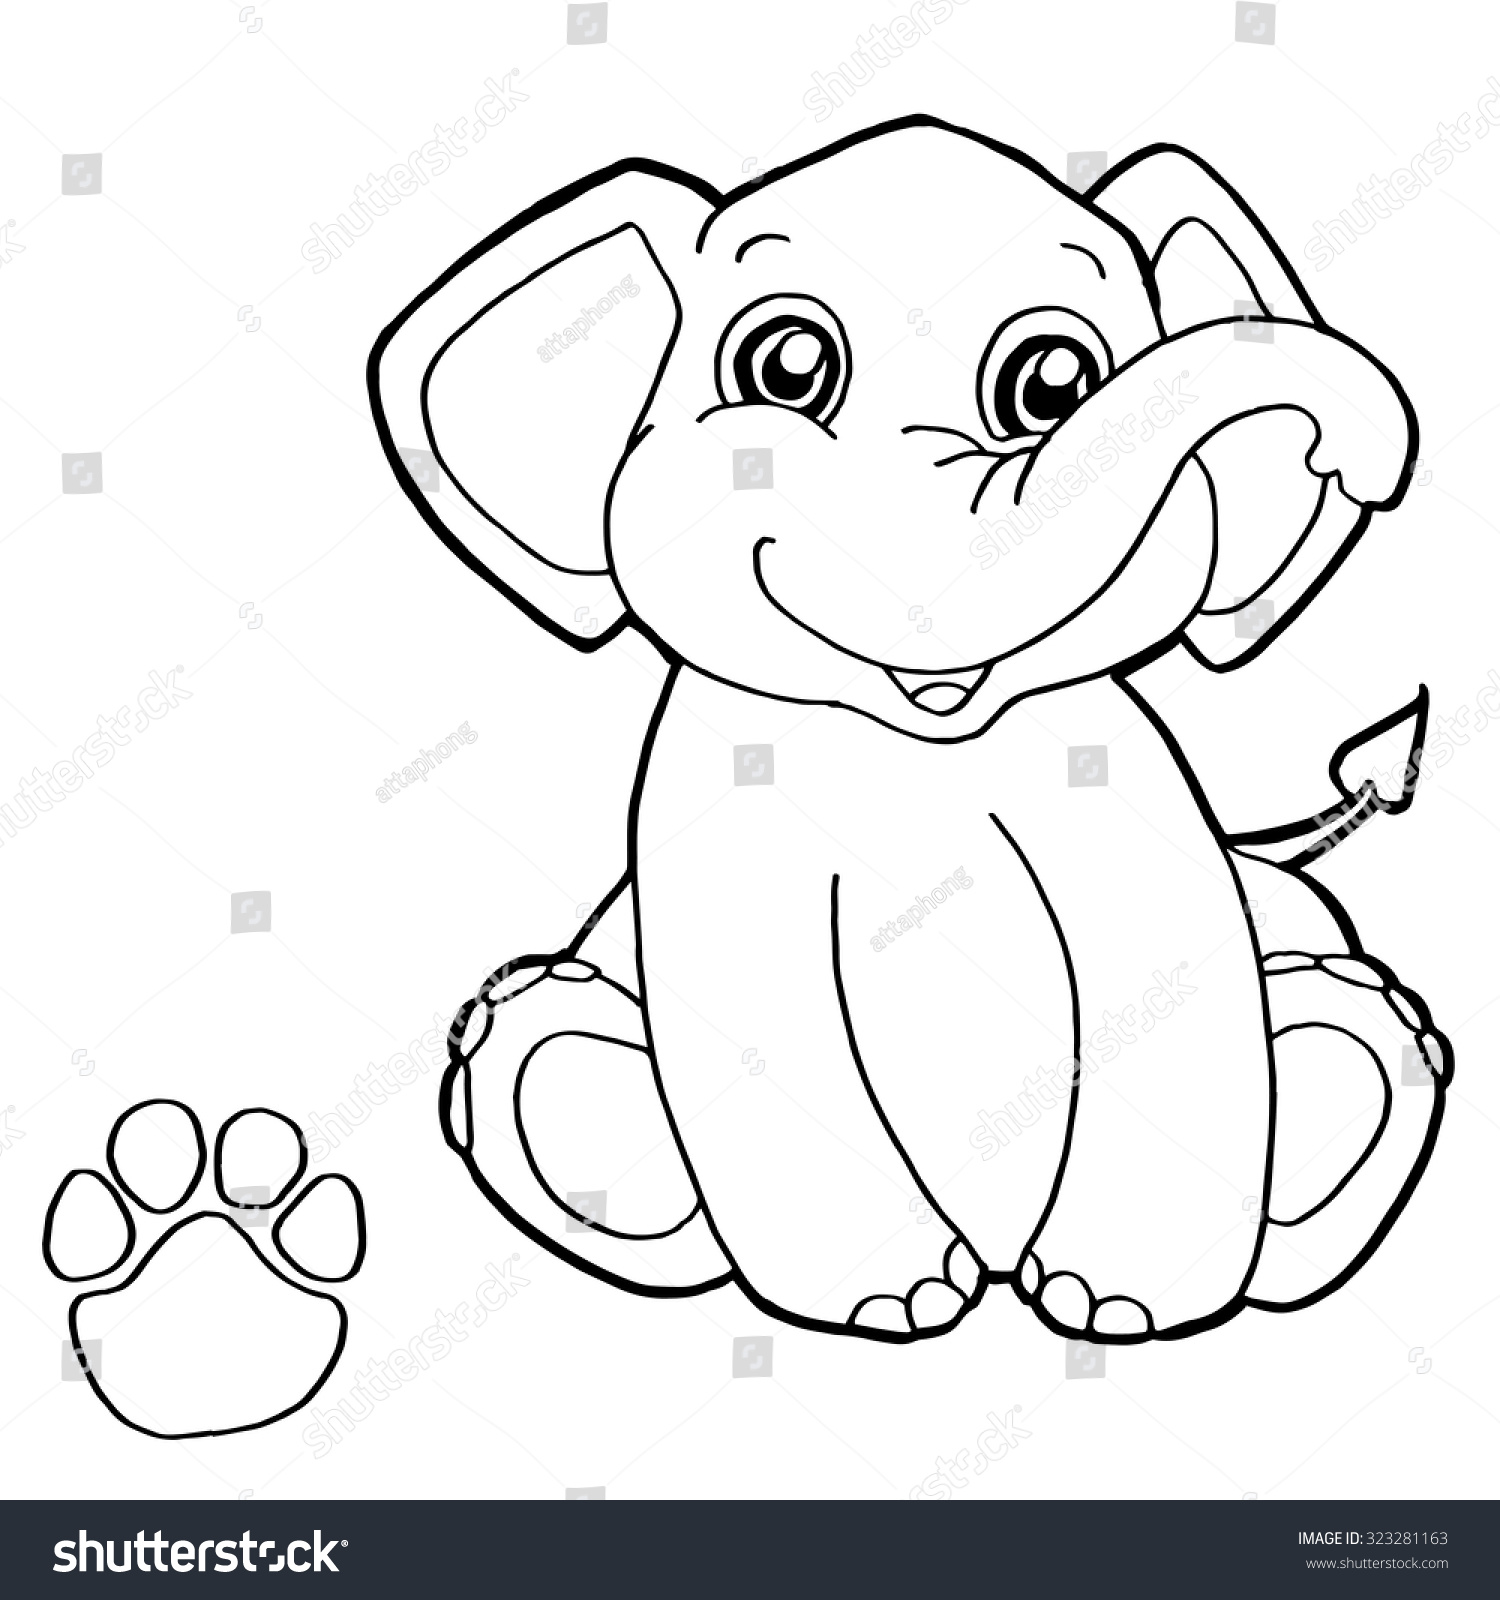 - Paw Print Elephant Coloring Page Vector Stock Vector (Royalty Free